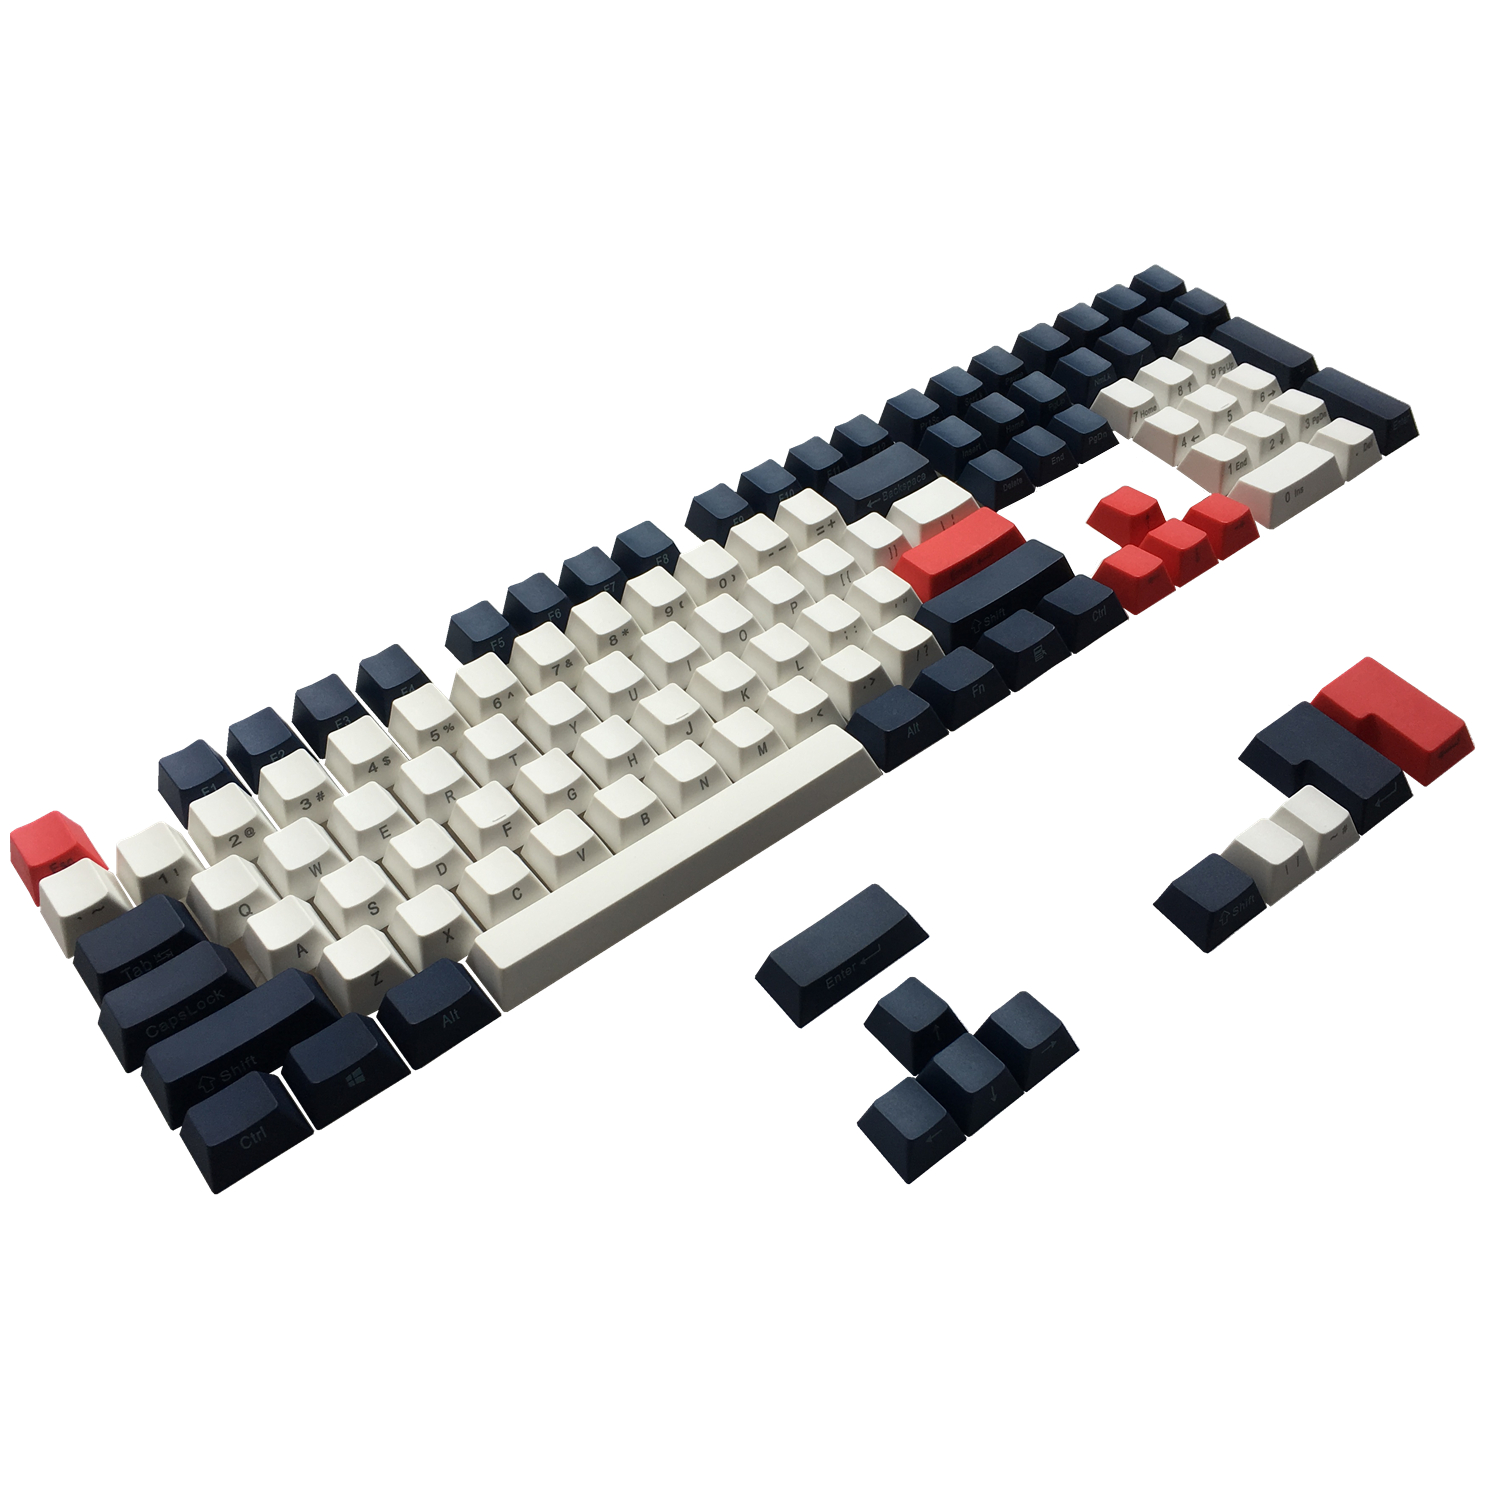 PBT Keycaps Side Printed ANSI ISO Cherry MX Keycap Set For 60%/<font><b>TKL</b></font> 87/104/108 MX <font><b>Mechanical</b></font> <font><b>Keyboard</b></font> Fit Anne iKBC Akko X Ducky image